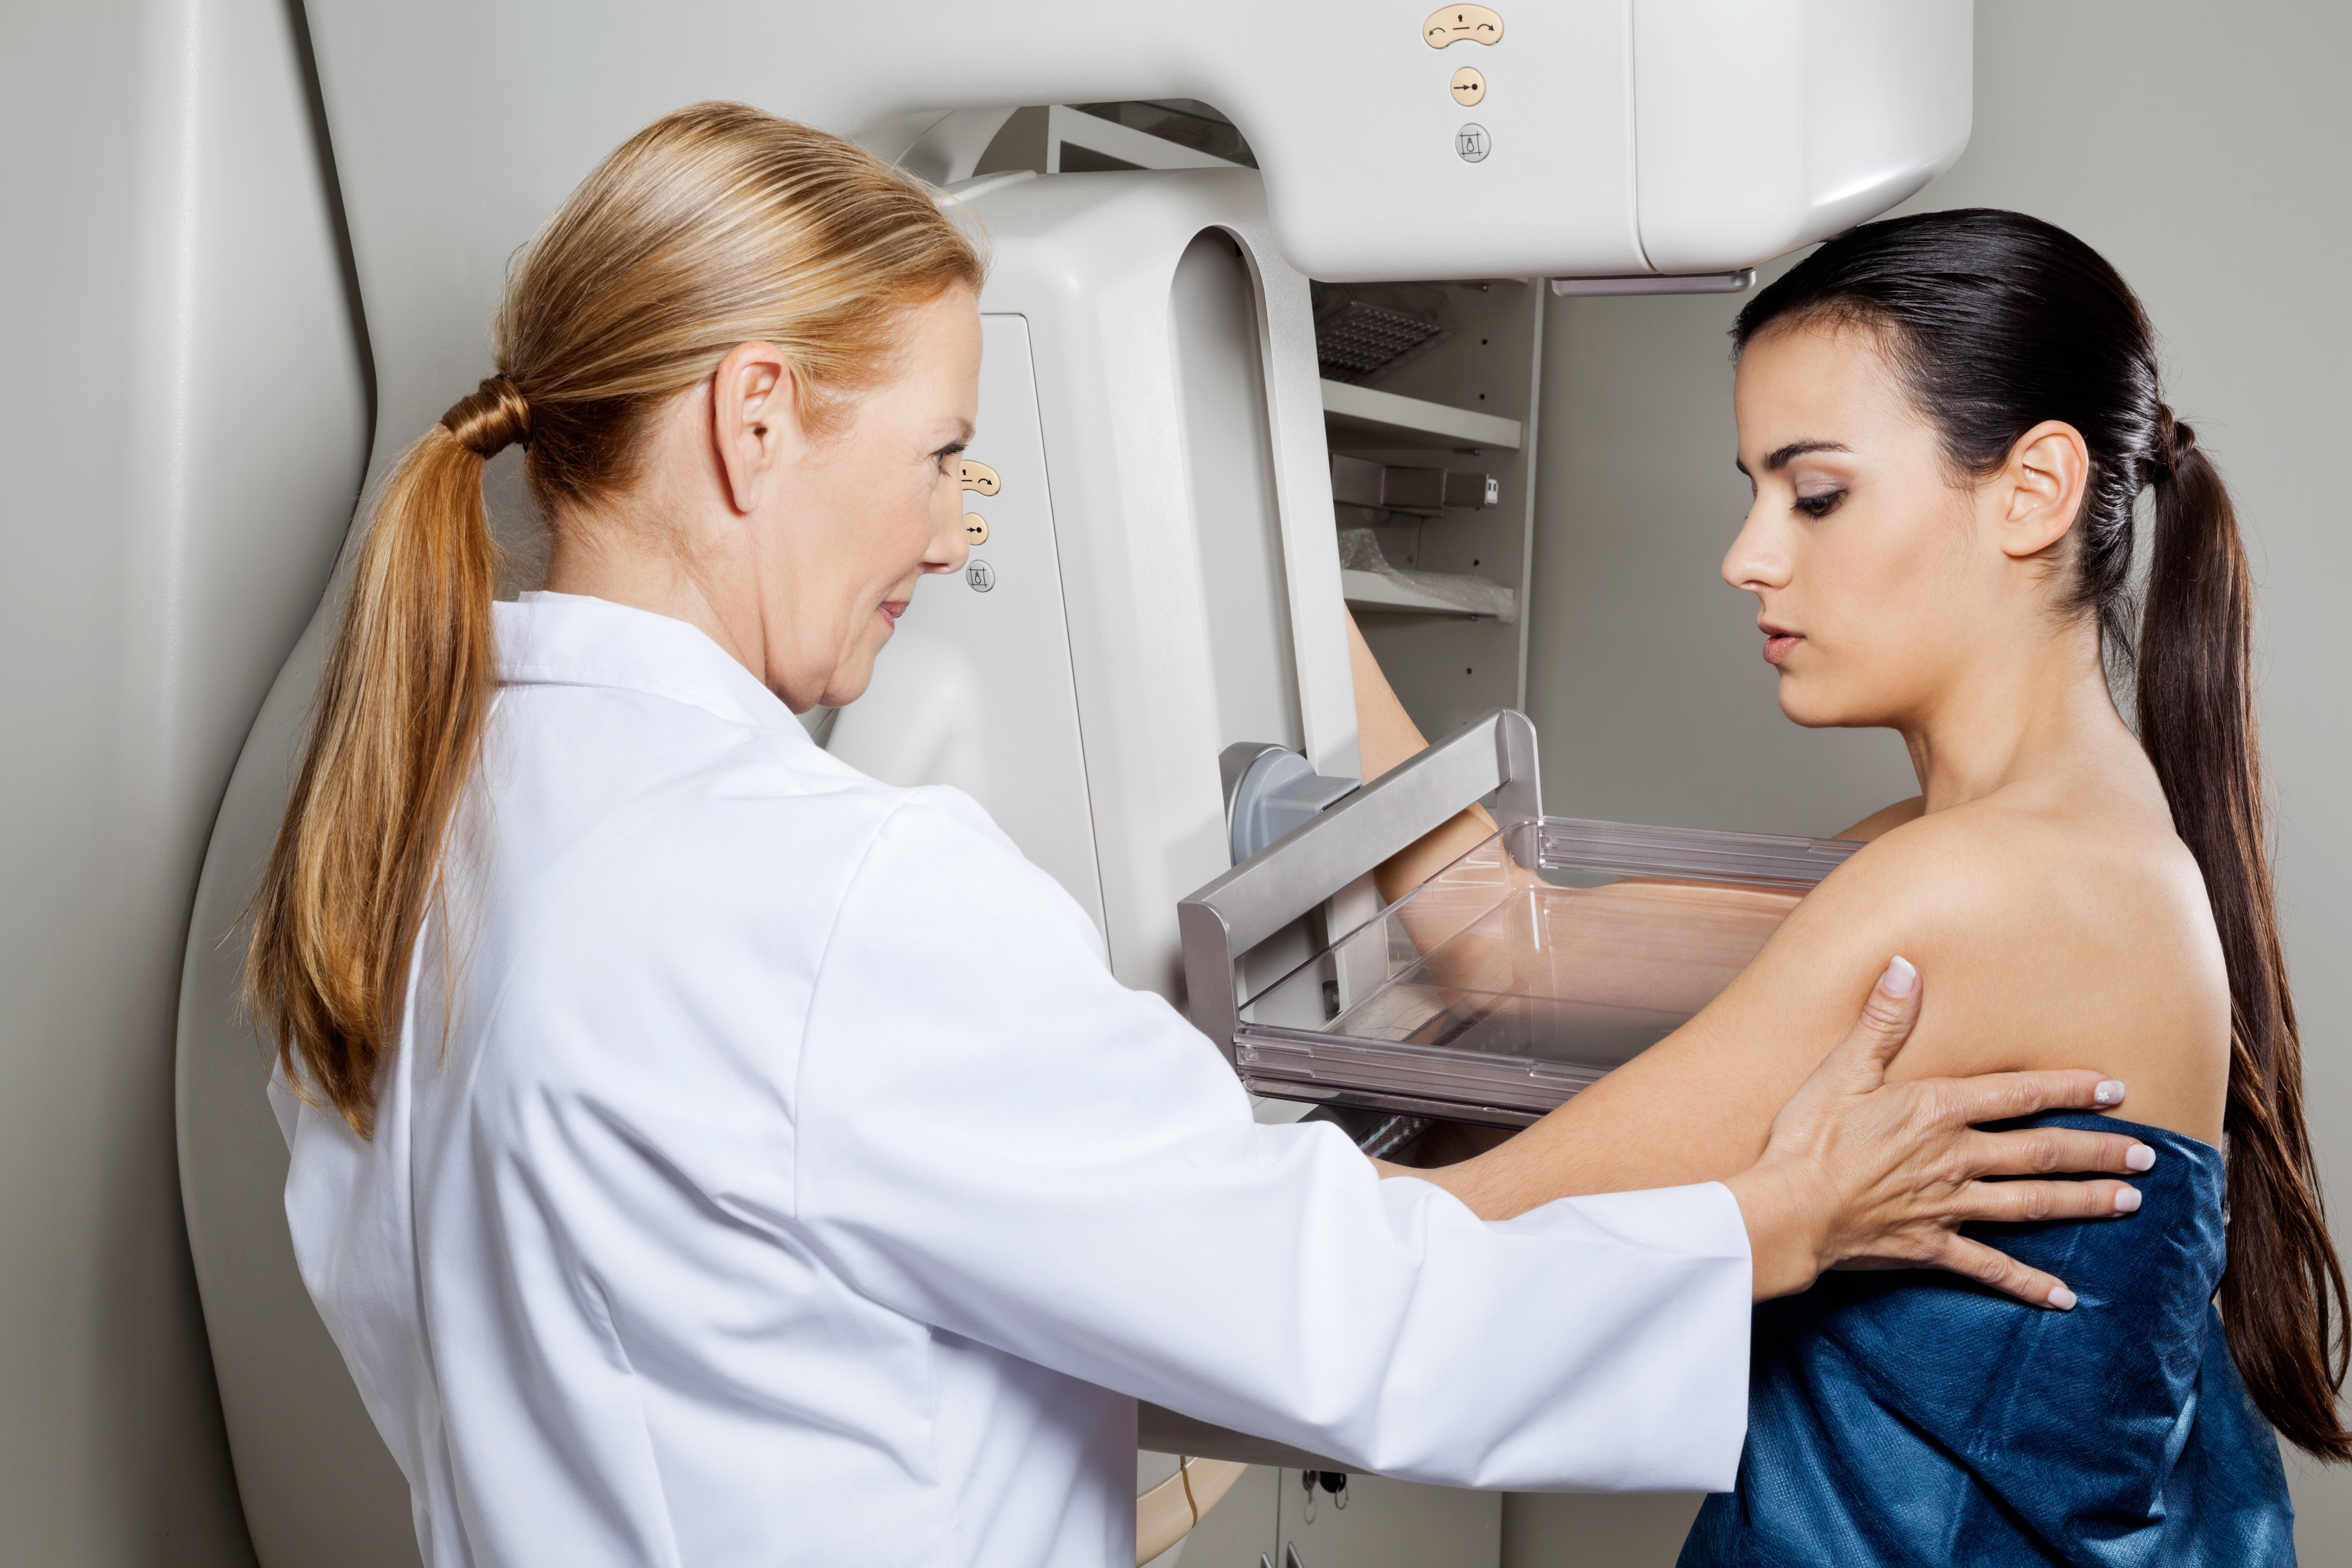 Options for Free Mammograms in Florida